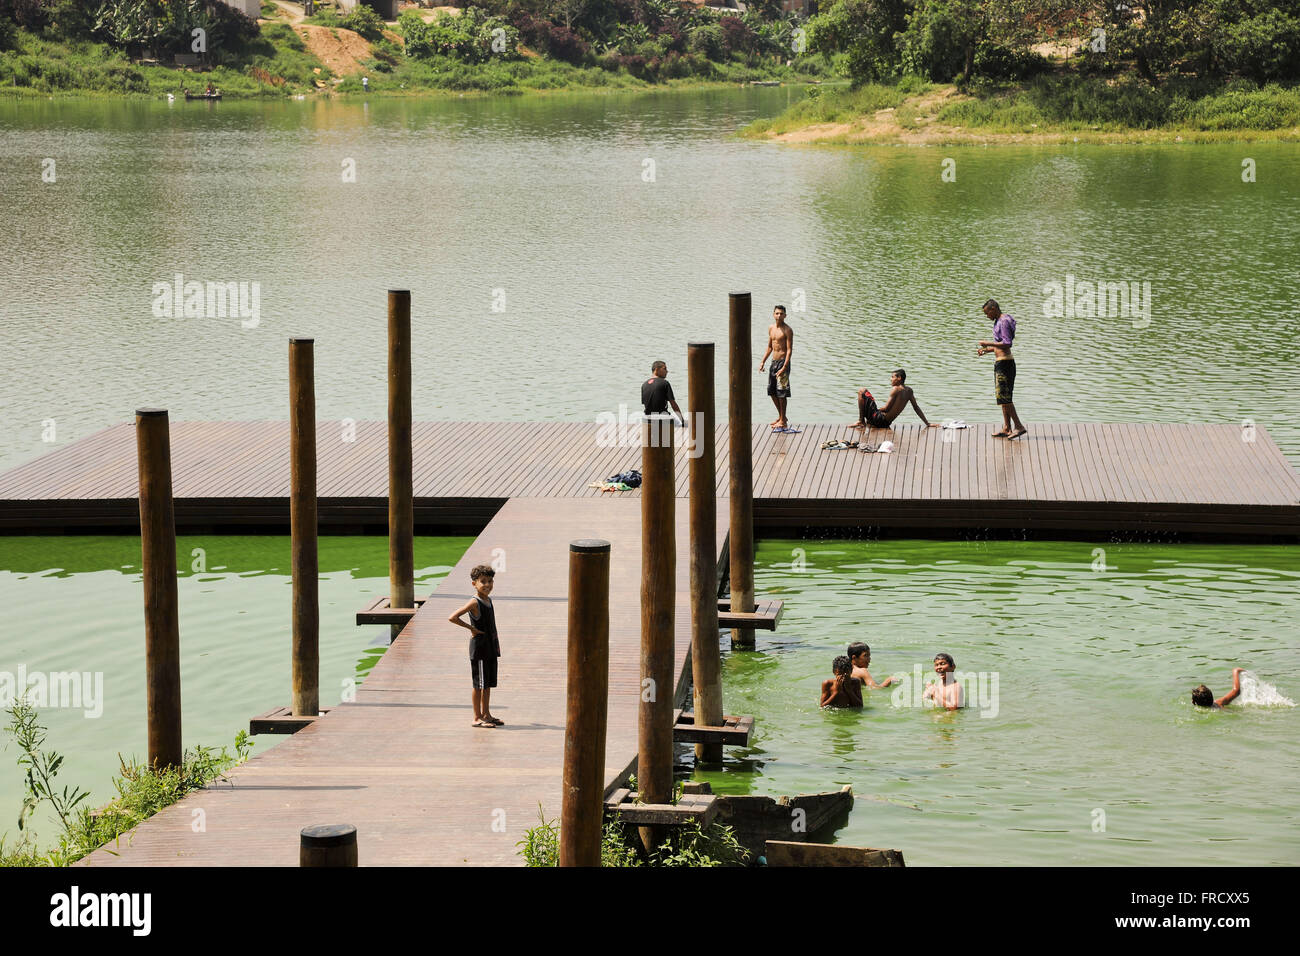 Deck for leisure living in the urbanized area of the Watershed Program - Stock Image